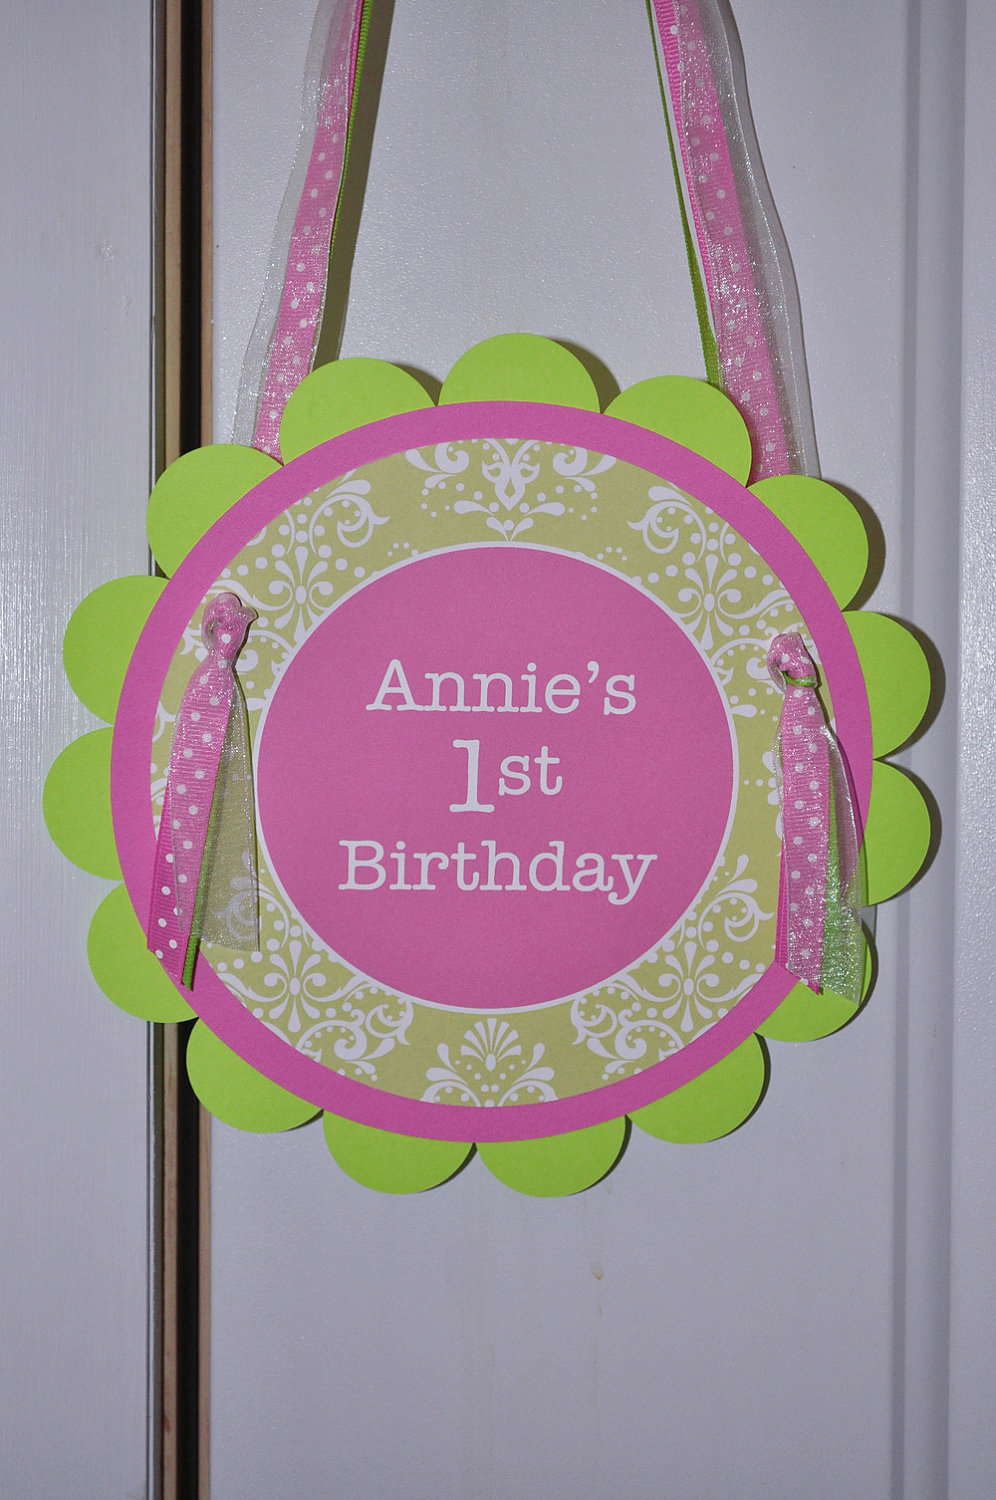 1st Birthday Party Door Sign Party Sign Welcome Sign Baby Shower Welcome Sign Party Decorations Pink And Green